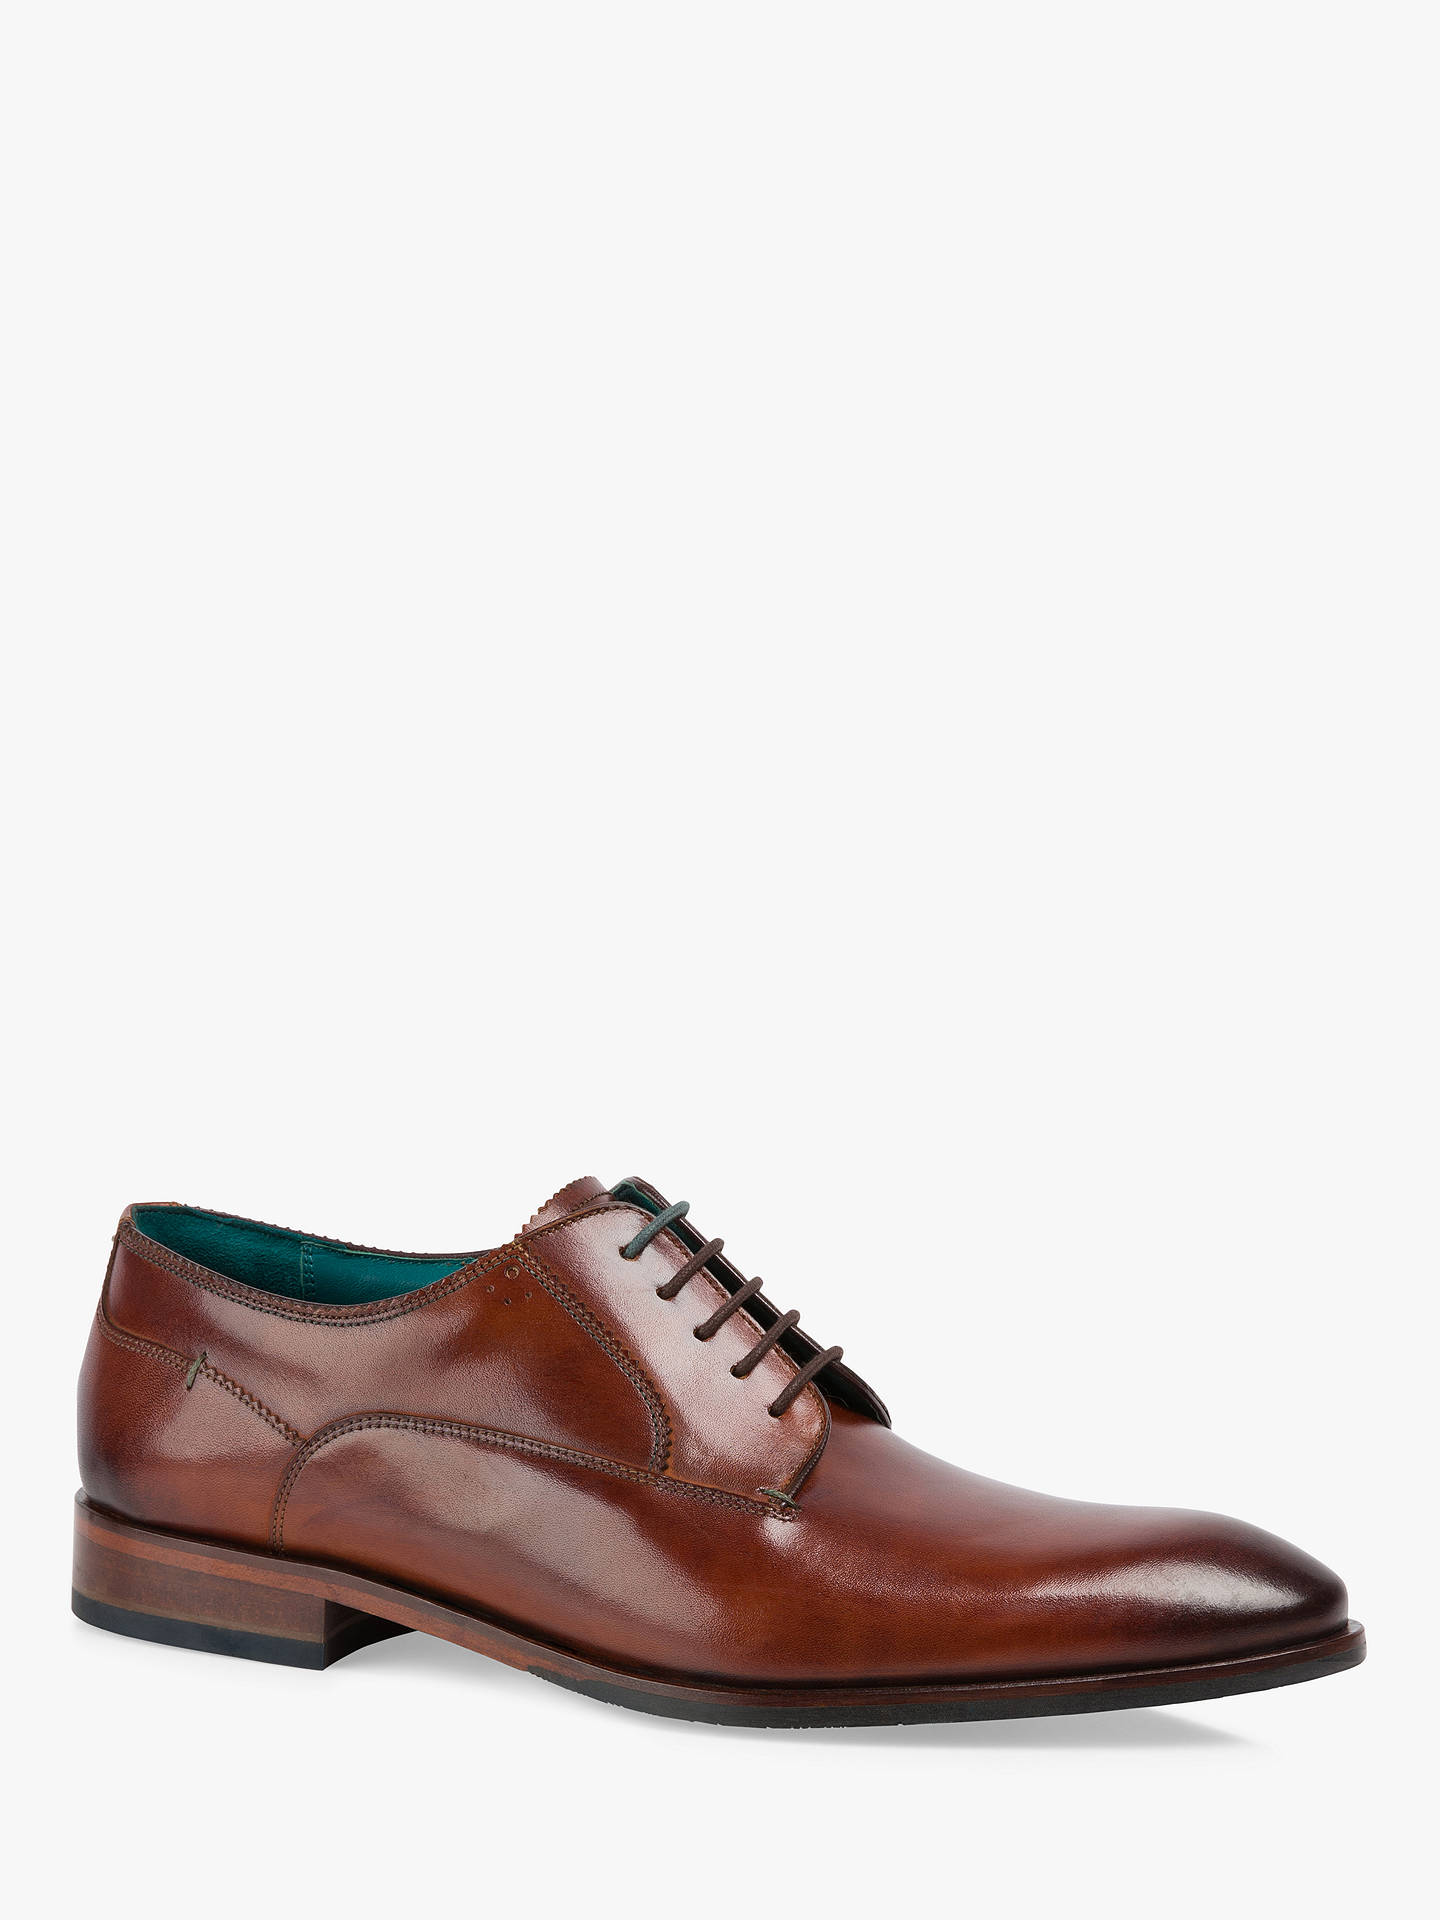 9879e26e0725 Ted Baker Parals Leather Derby Shoes at John Lewis   Partners